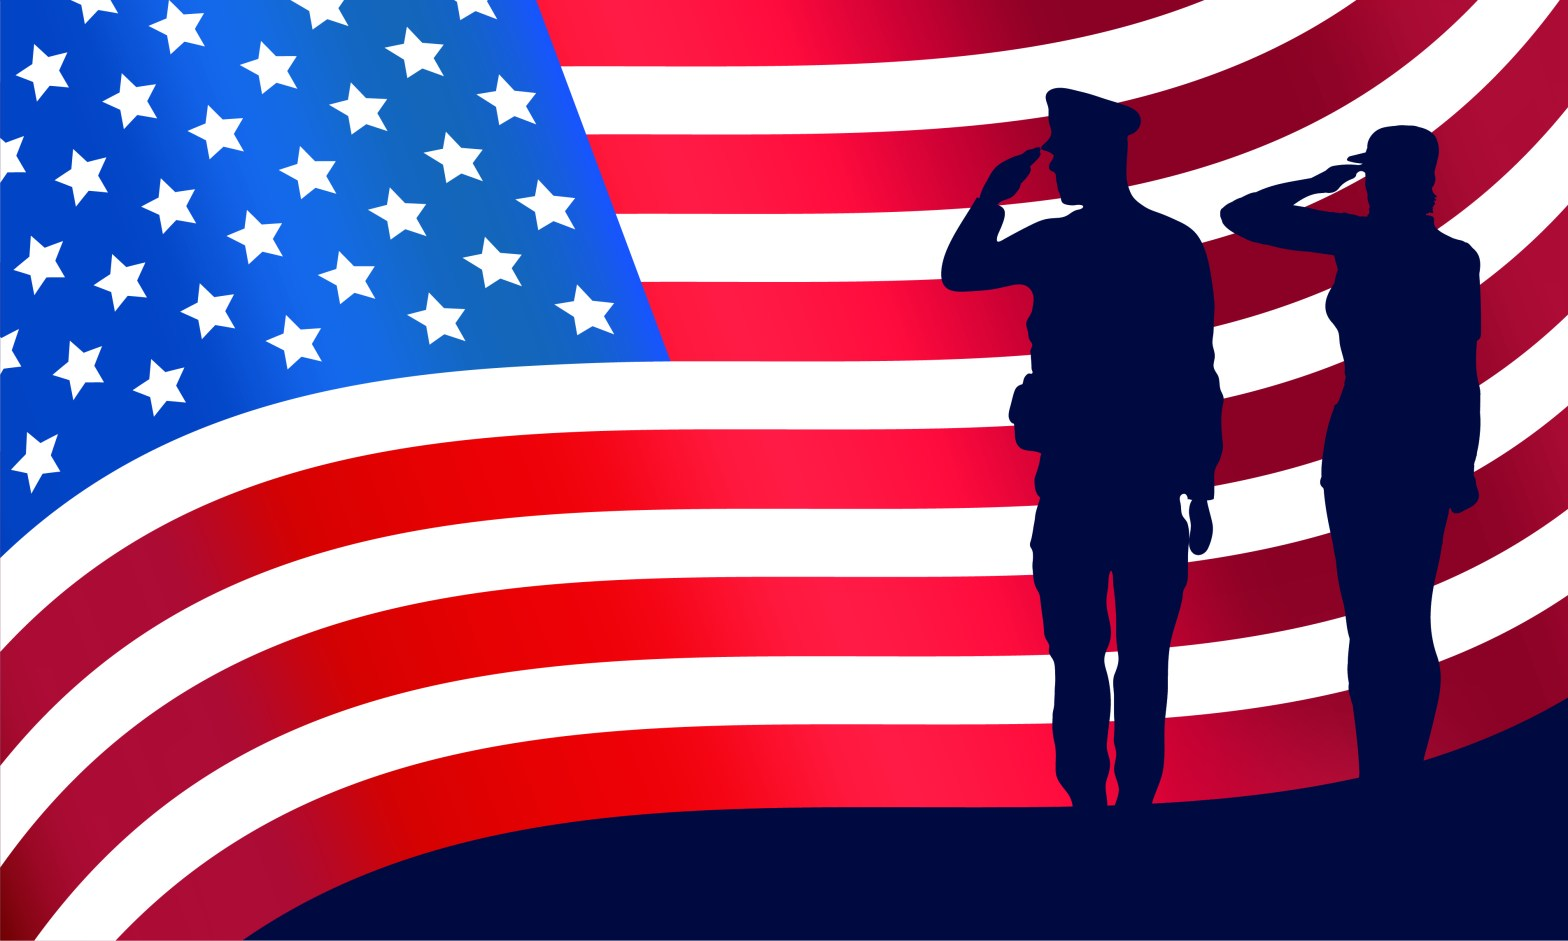 American Flag with two military personnel silhouettes